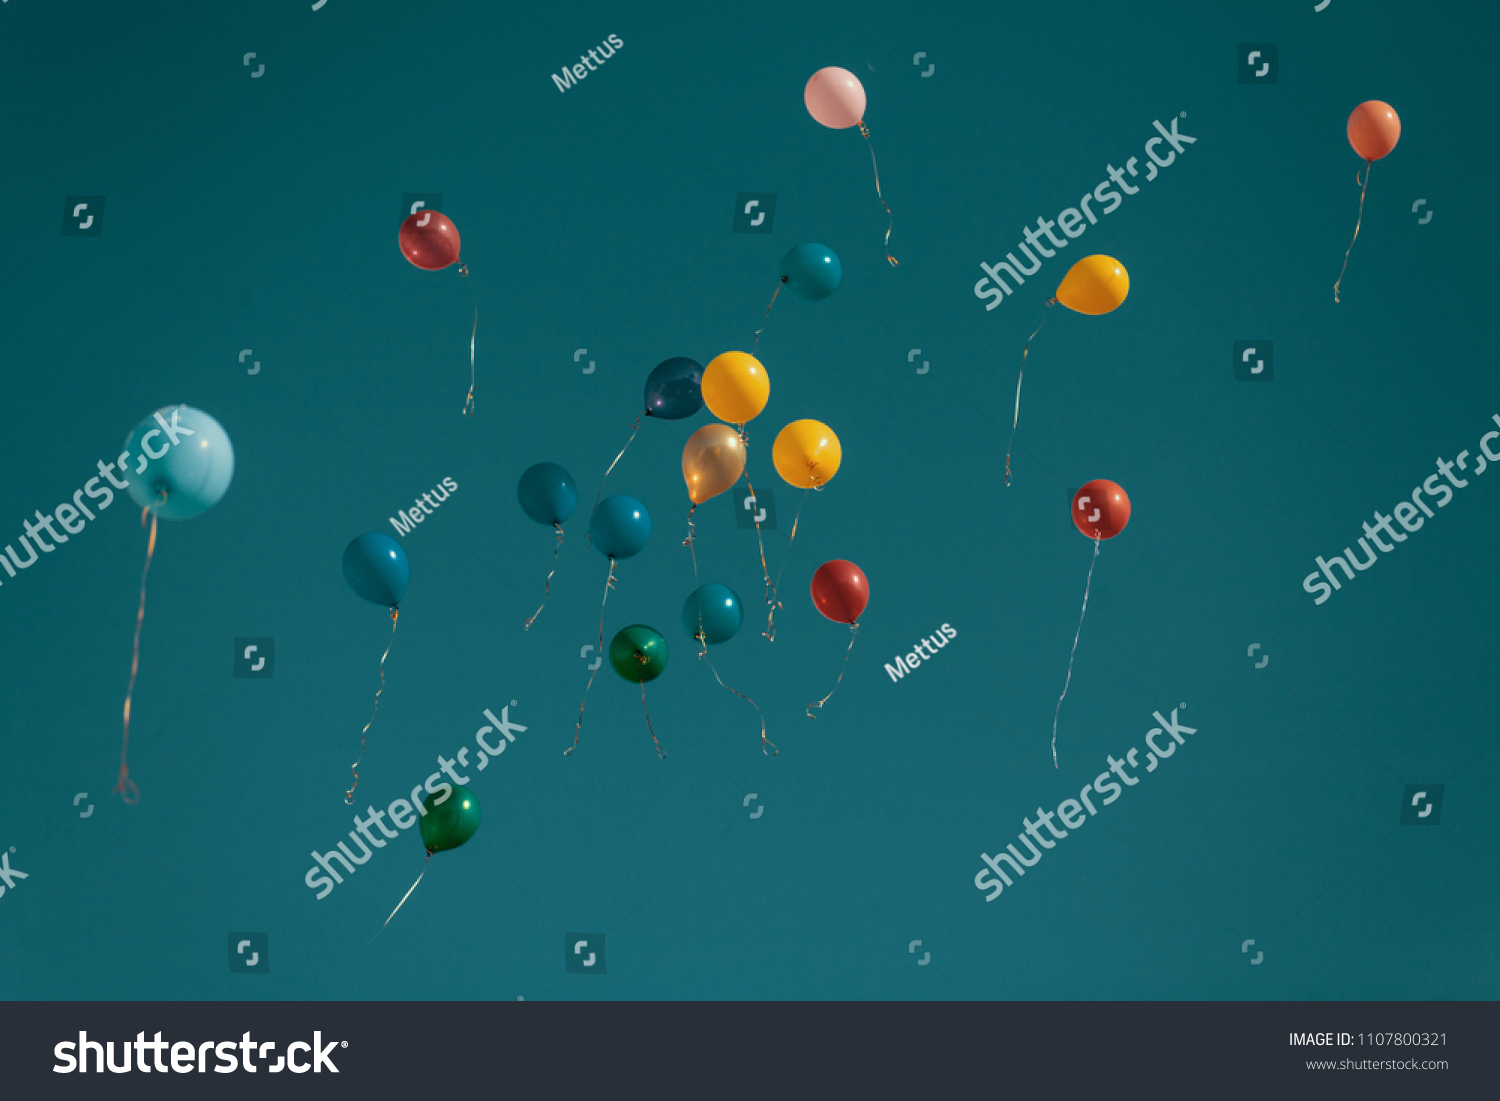 stock-photo-balloons-flying-away-movie-s